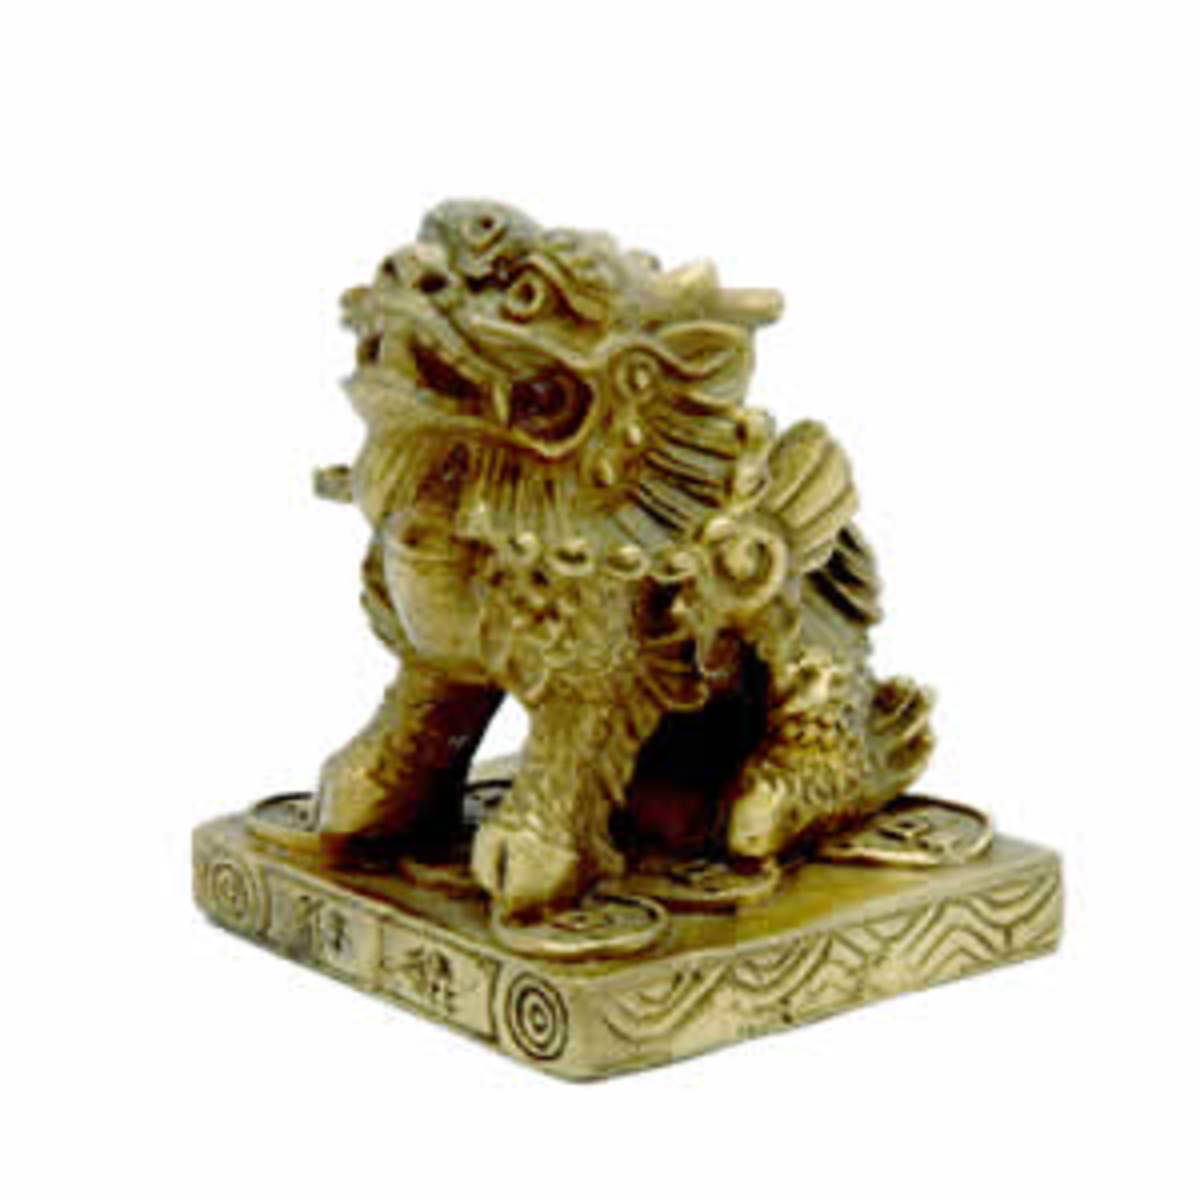 Chi Lin or Dragon Horse Feng Shui Symbol for Protection, Career Luck and Abundance